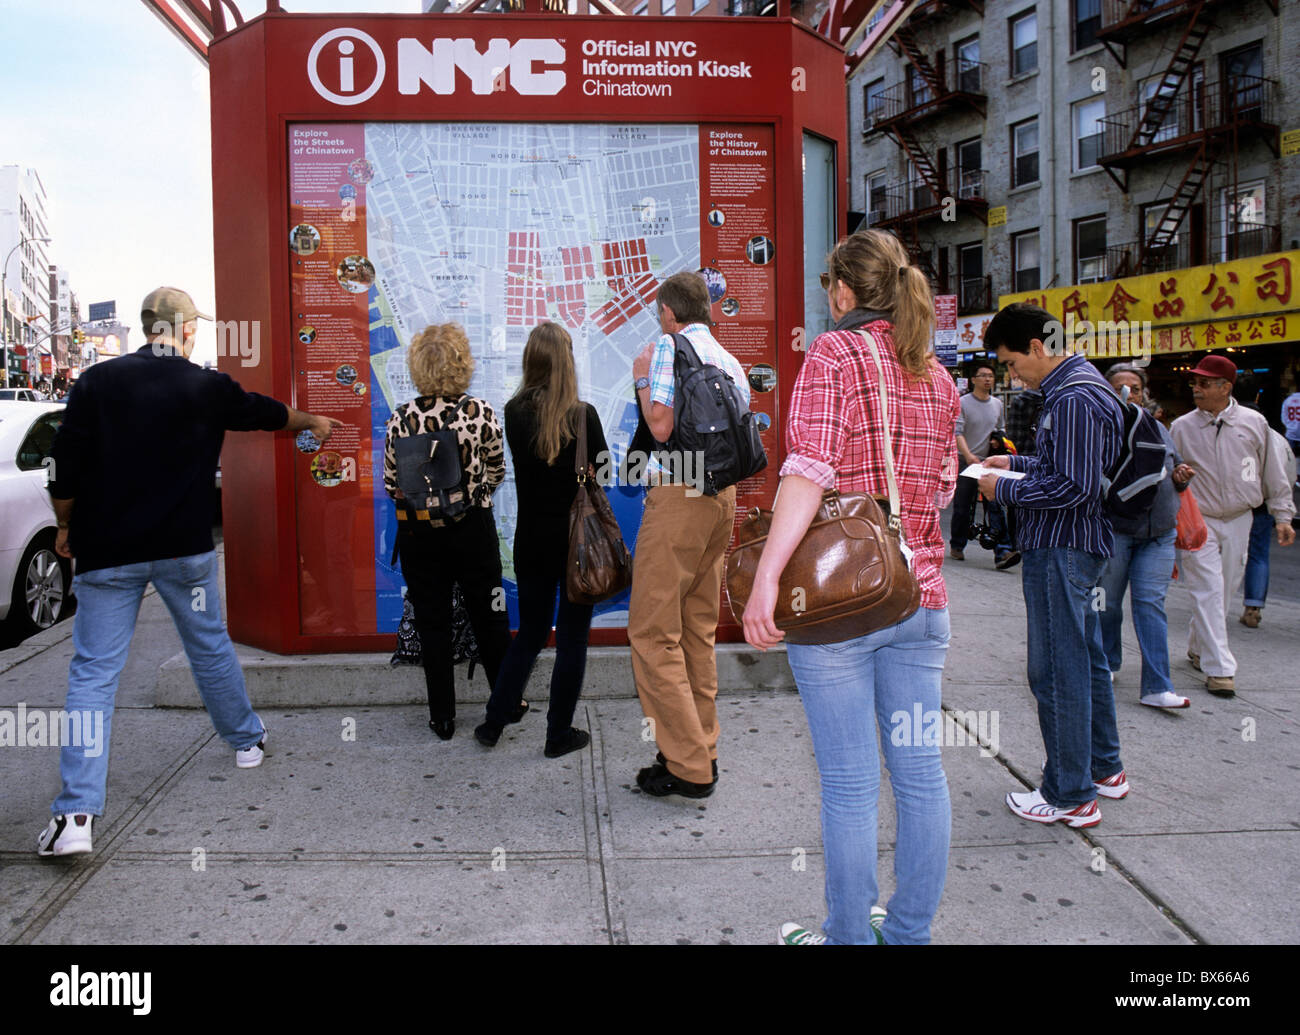 USA New York City Canal Street Chinatown Information Kiosk Lower East Side Manhattan  Street Scene. Tourists looking at a map b2e6493dc96ea